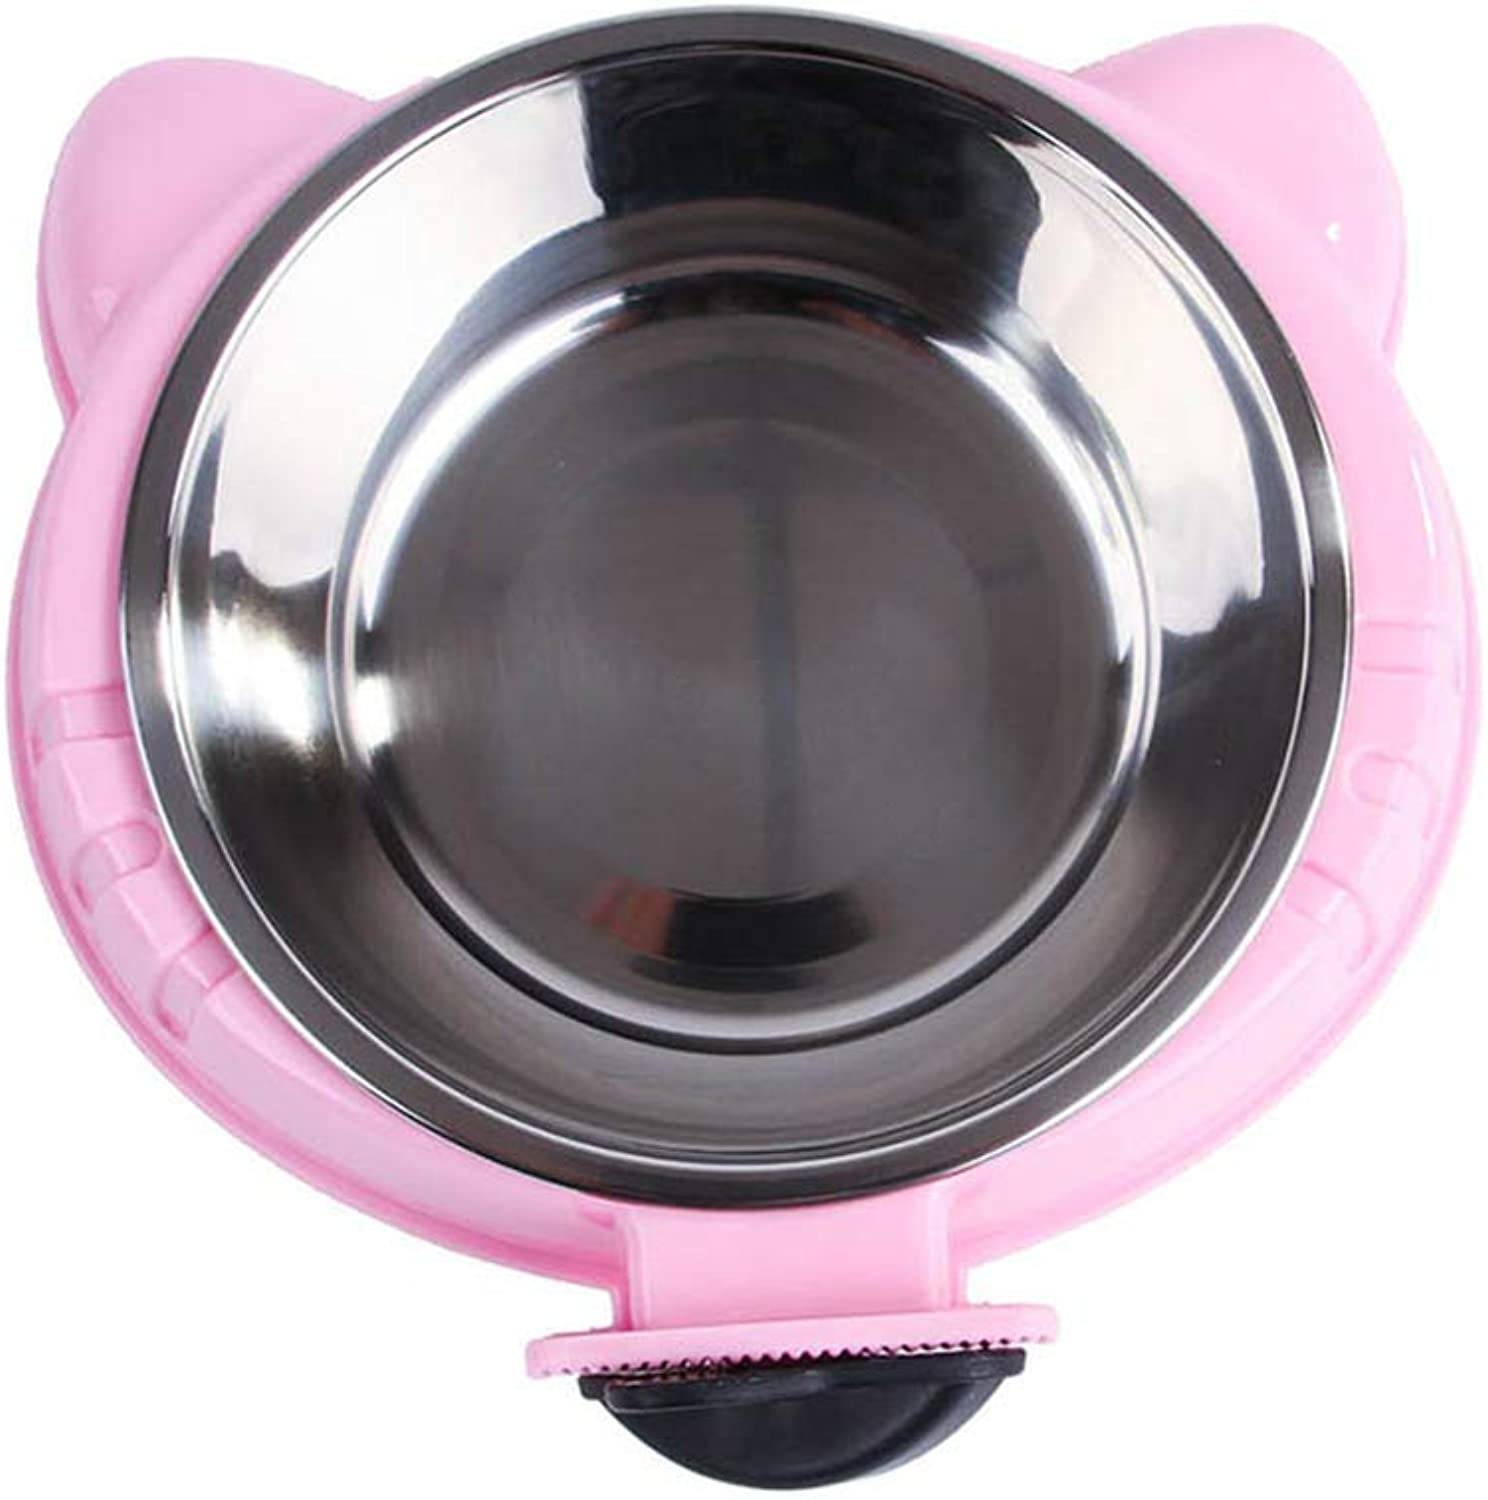 LEIYING Dog Bowls Universal Dog Cat Bowls Stainless Steel Pet Bowls Cat Ears Shape Portable Carrier